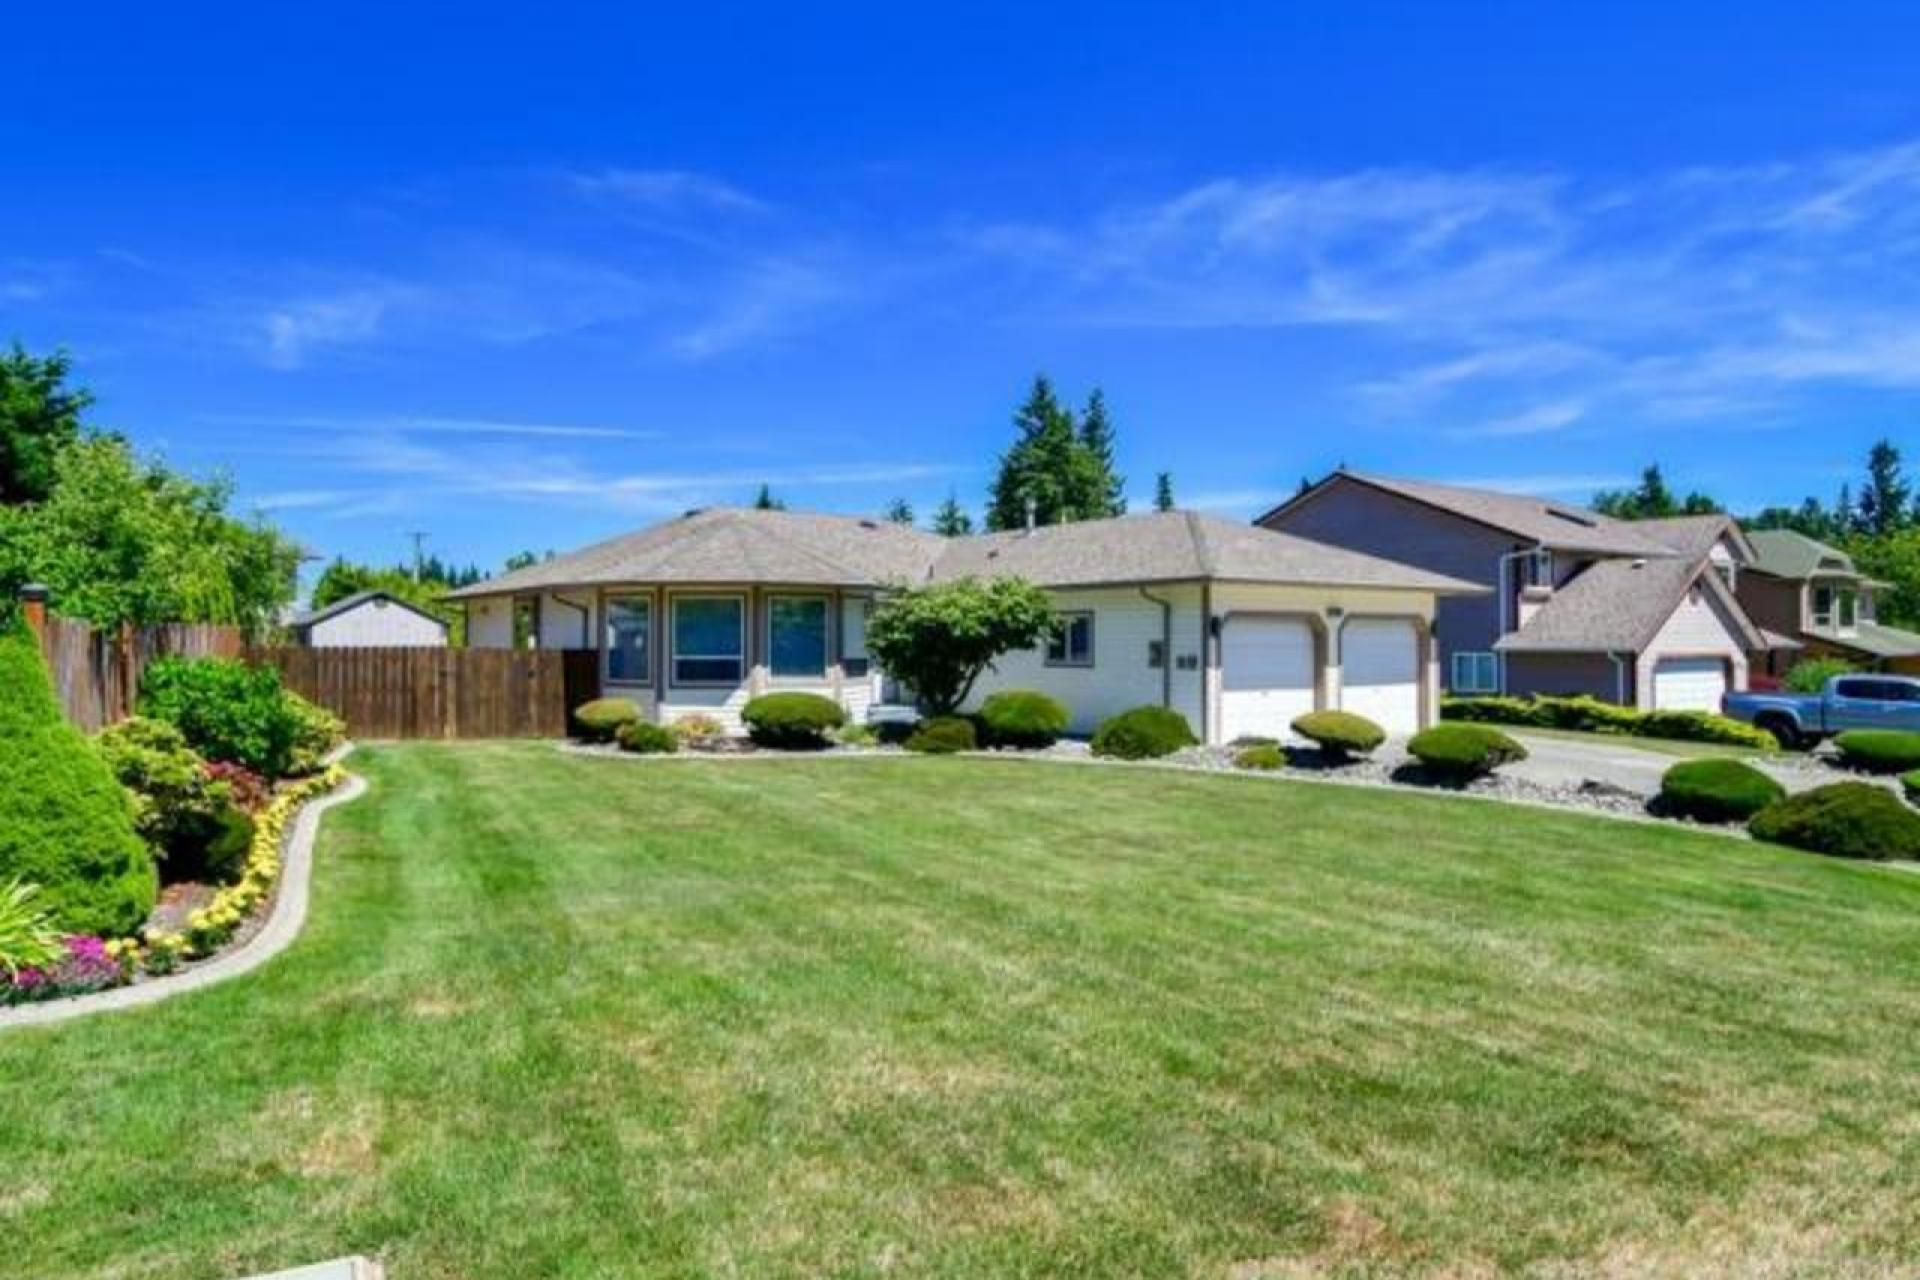 698 Nature Park Drive, Willow Point, Campbell River